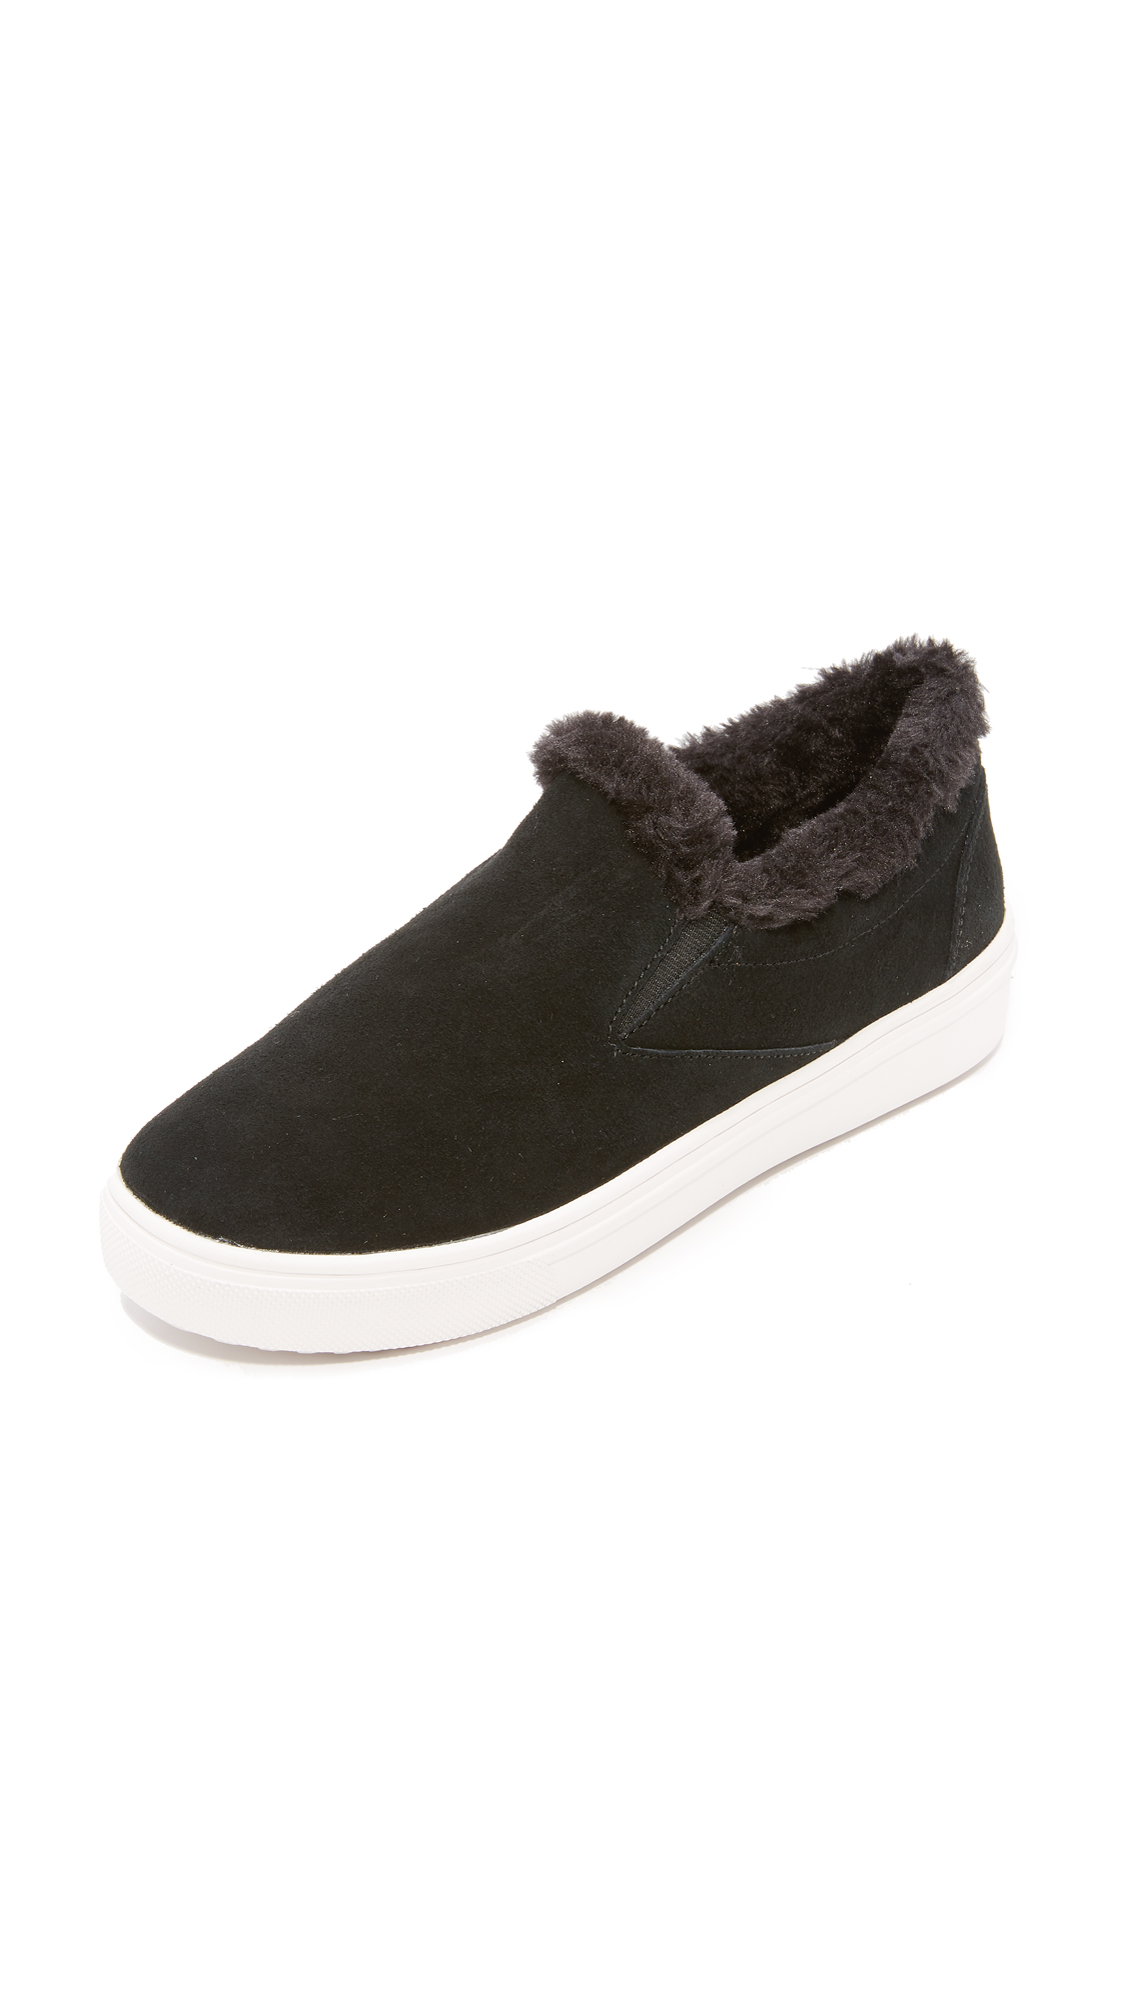 Steven Cuddles Faux Fur Sneakers - Black